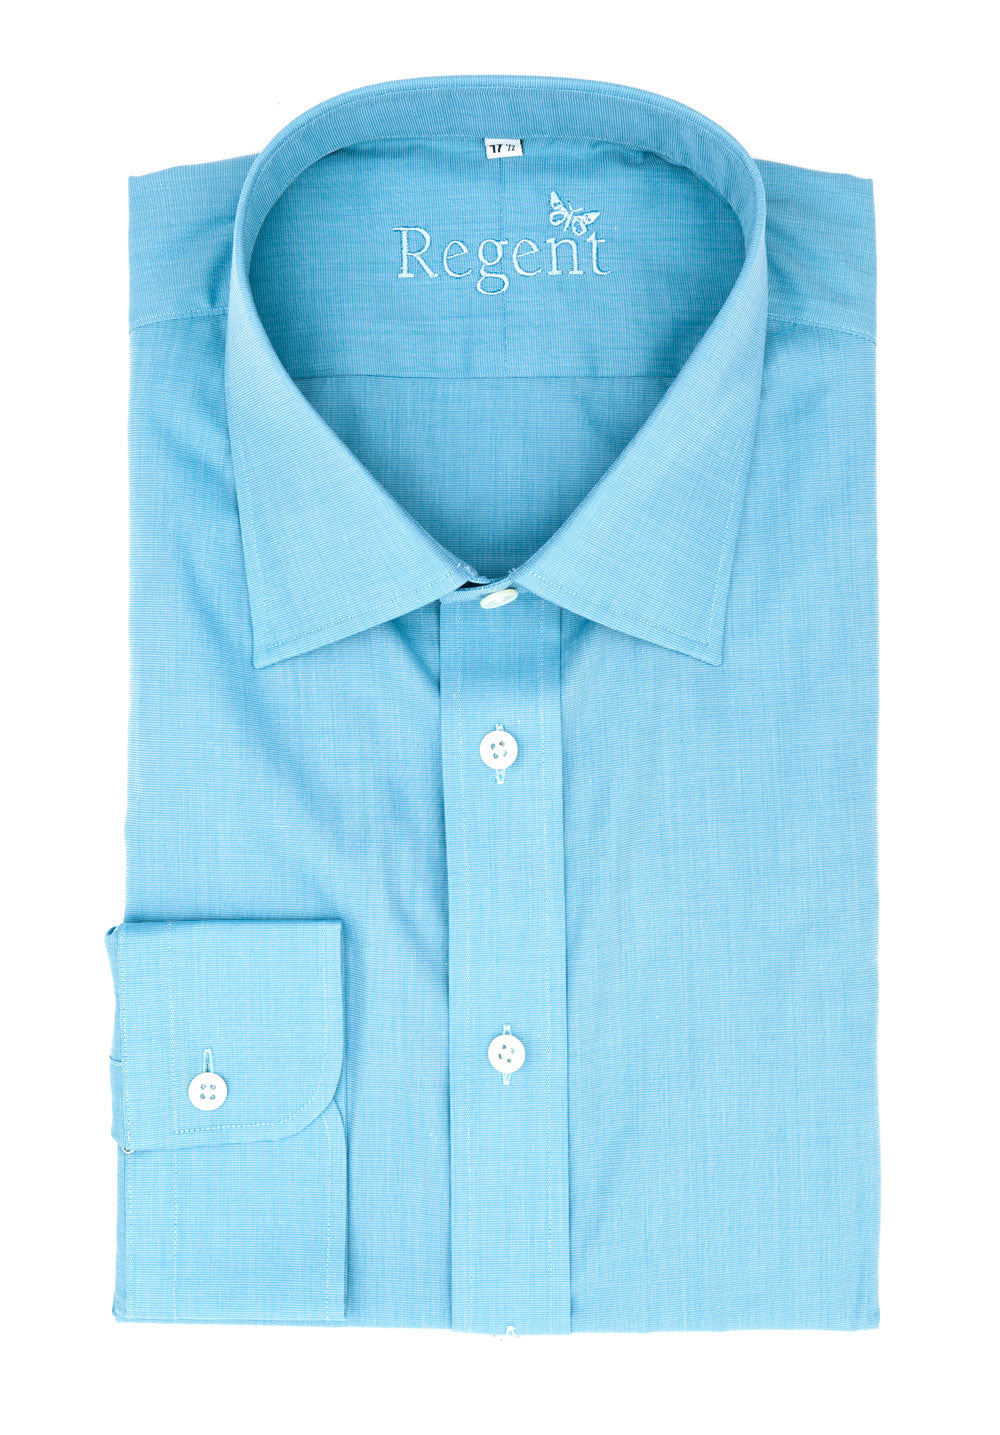 Regent - Shirt - Eggshell Blue - Luxury Cotton Twill - Regent Tailoring